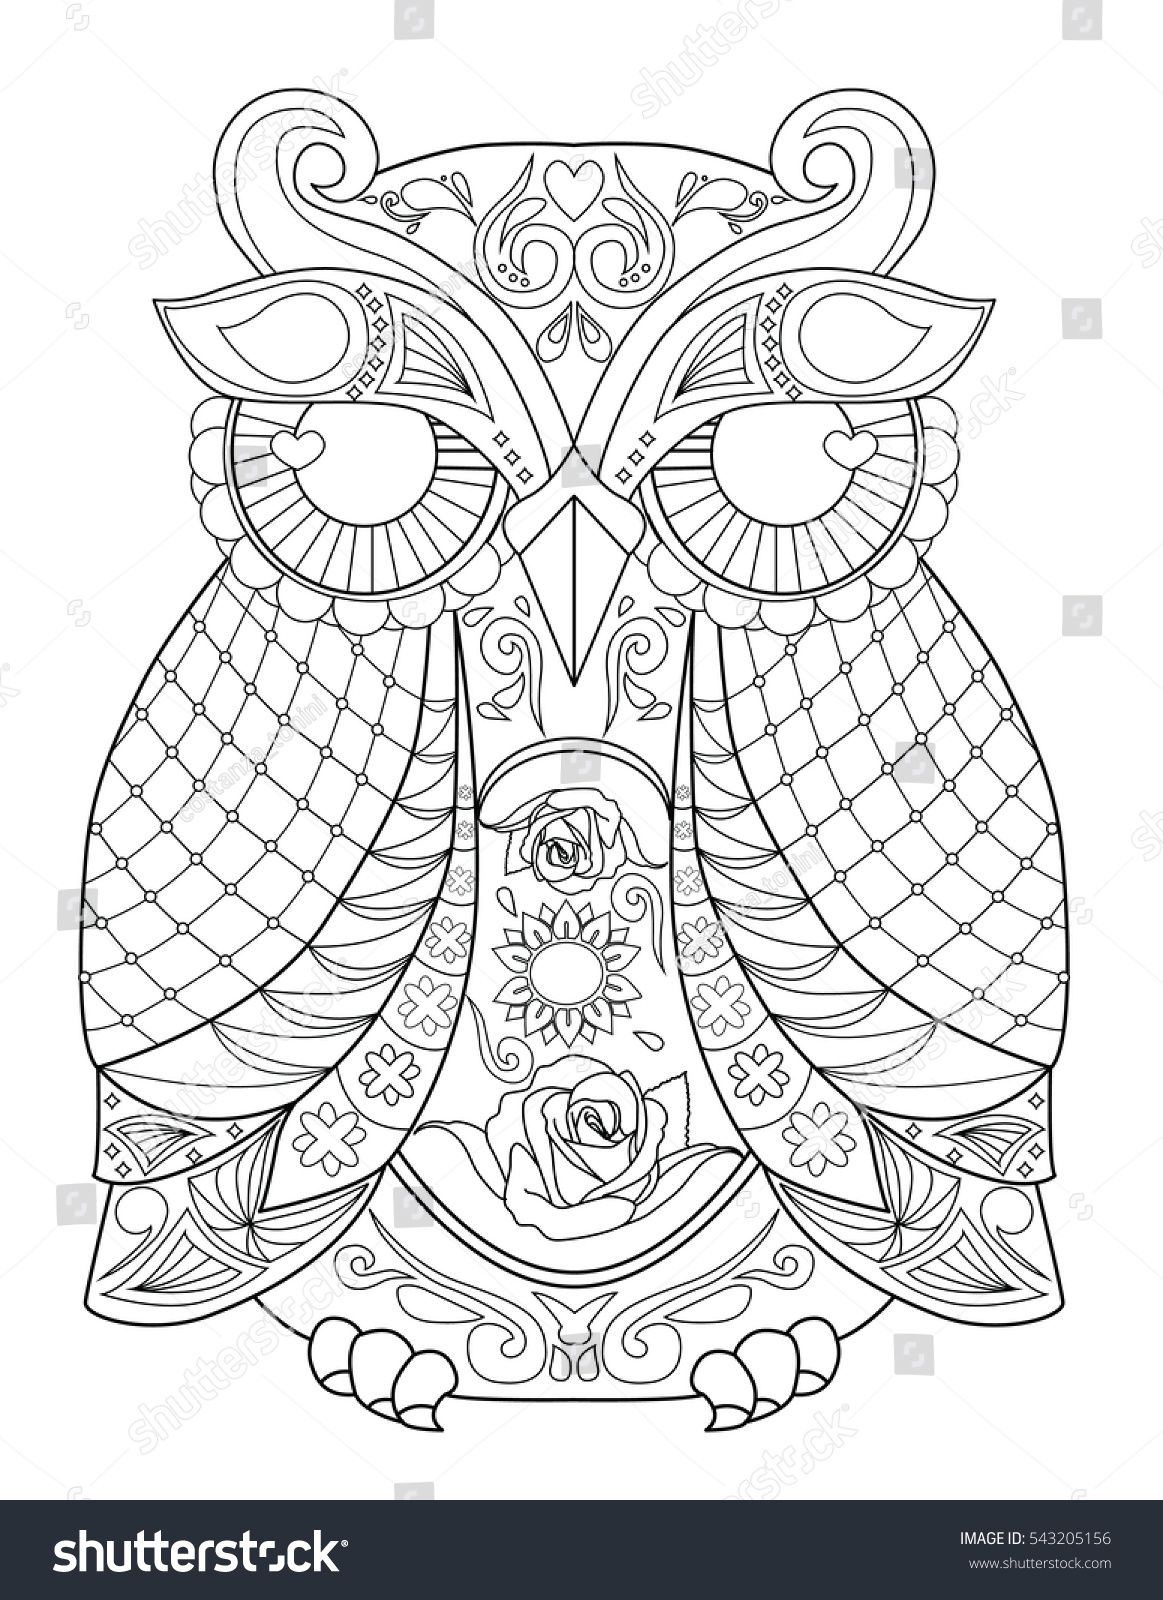 Owl, animal mandala coloring page for adult. | Coloring pages ...